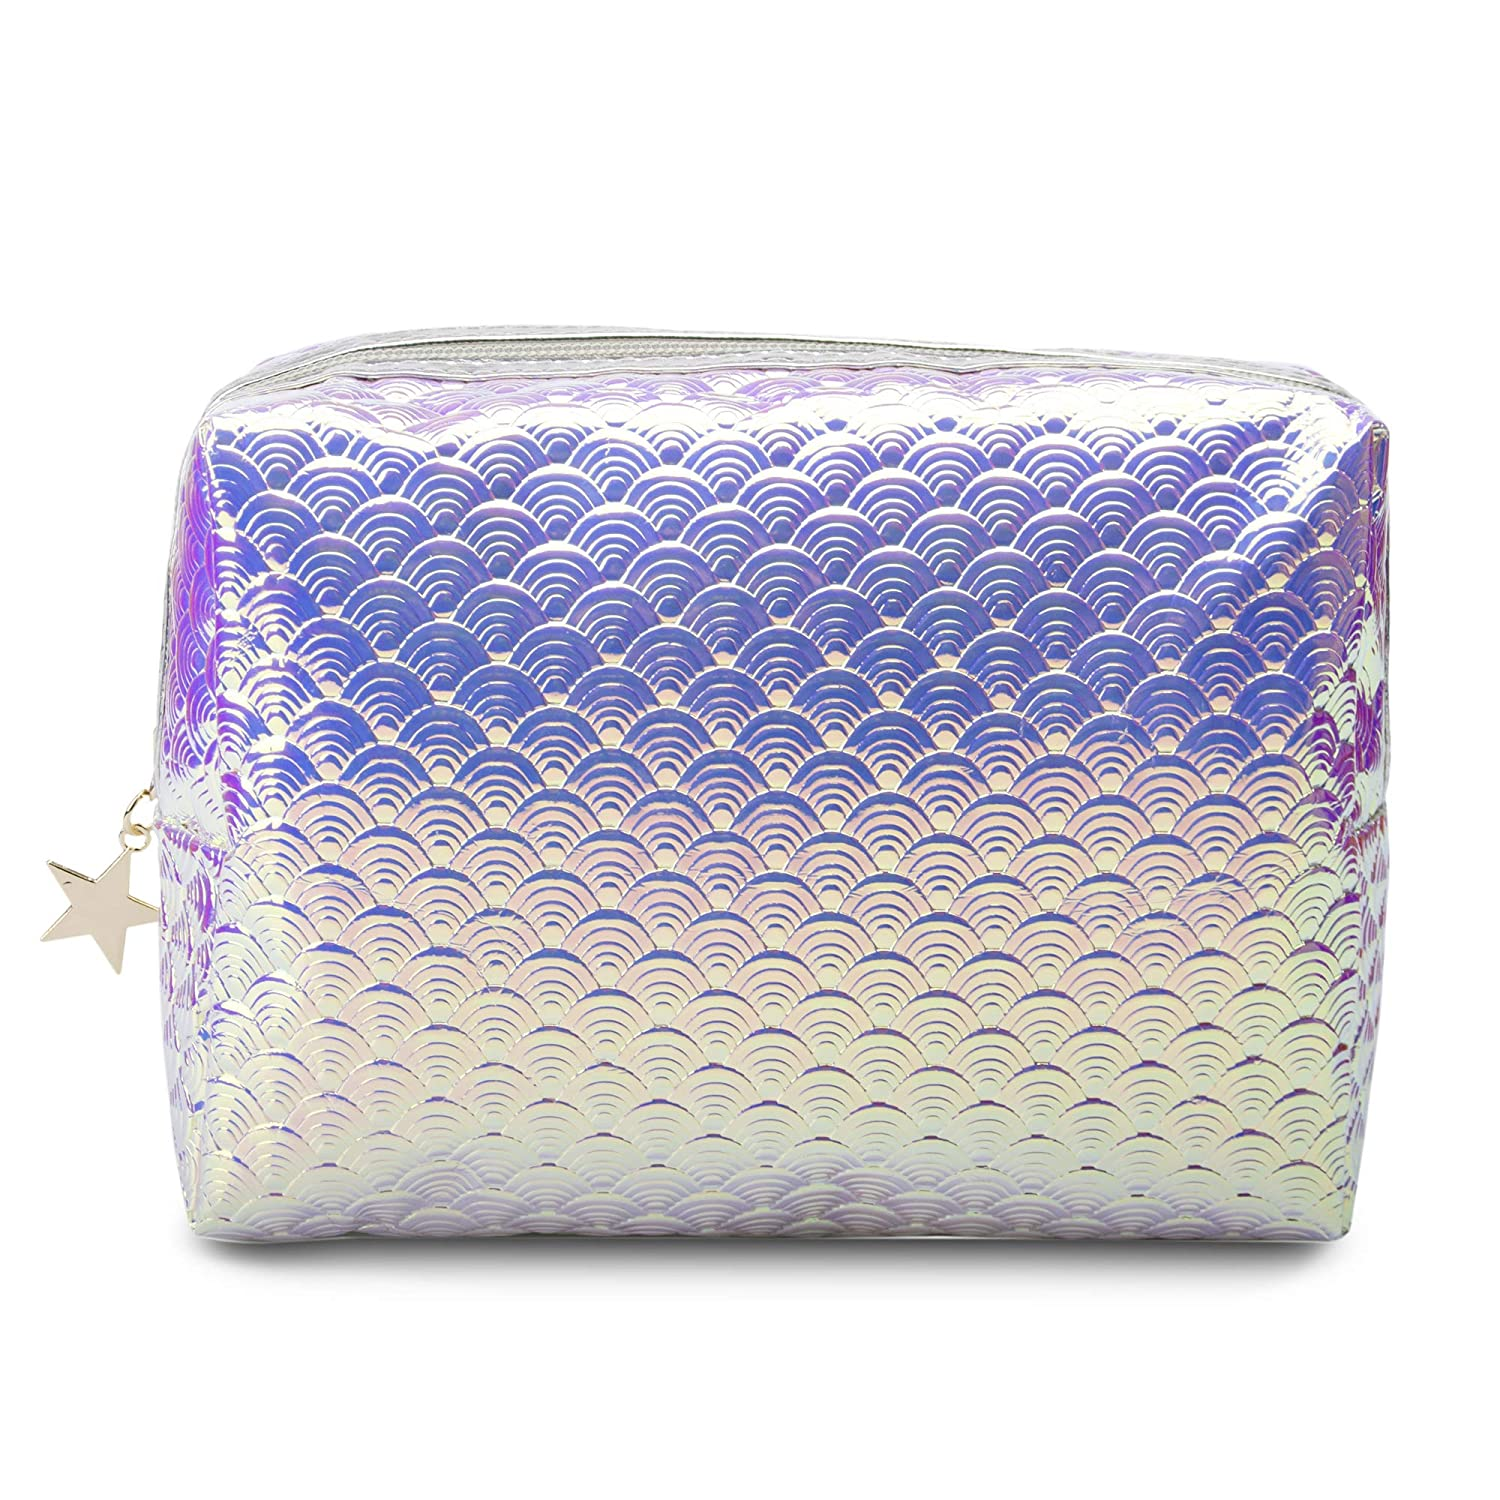 08c5cc347146 Holographic Mermaid Makeup bag Cosmetic Bag Toiletry Travel Bag Handy Large  Protable Wash Pouch...